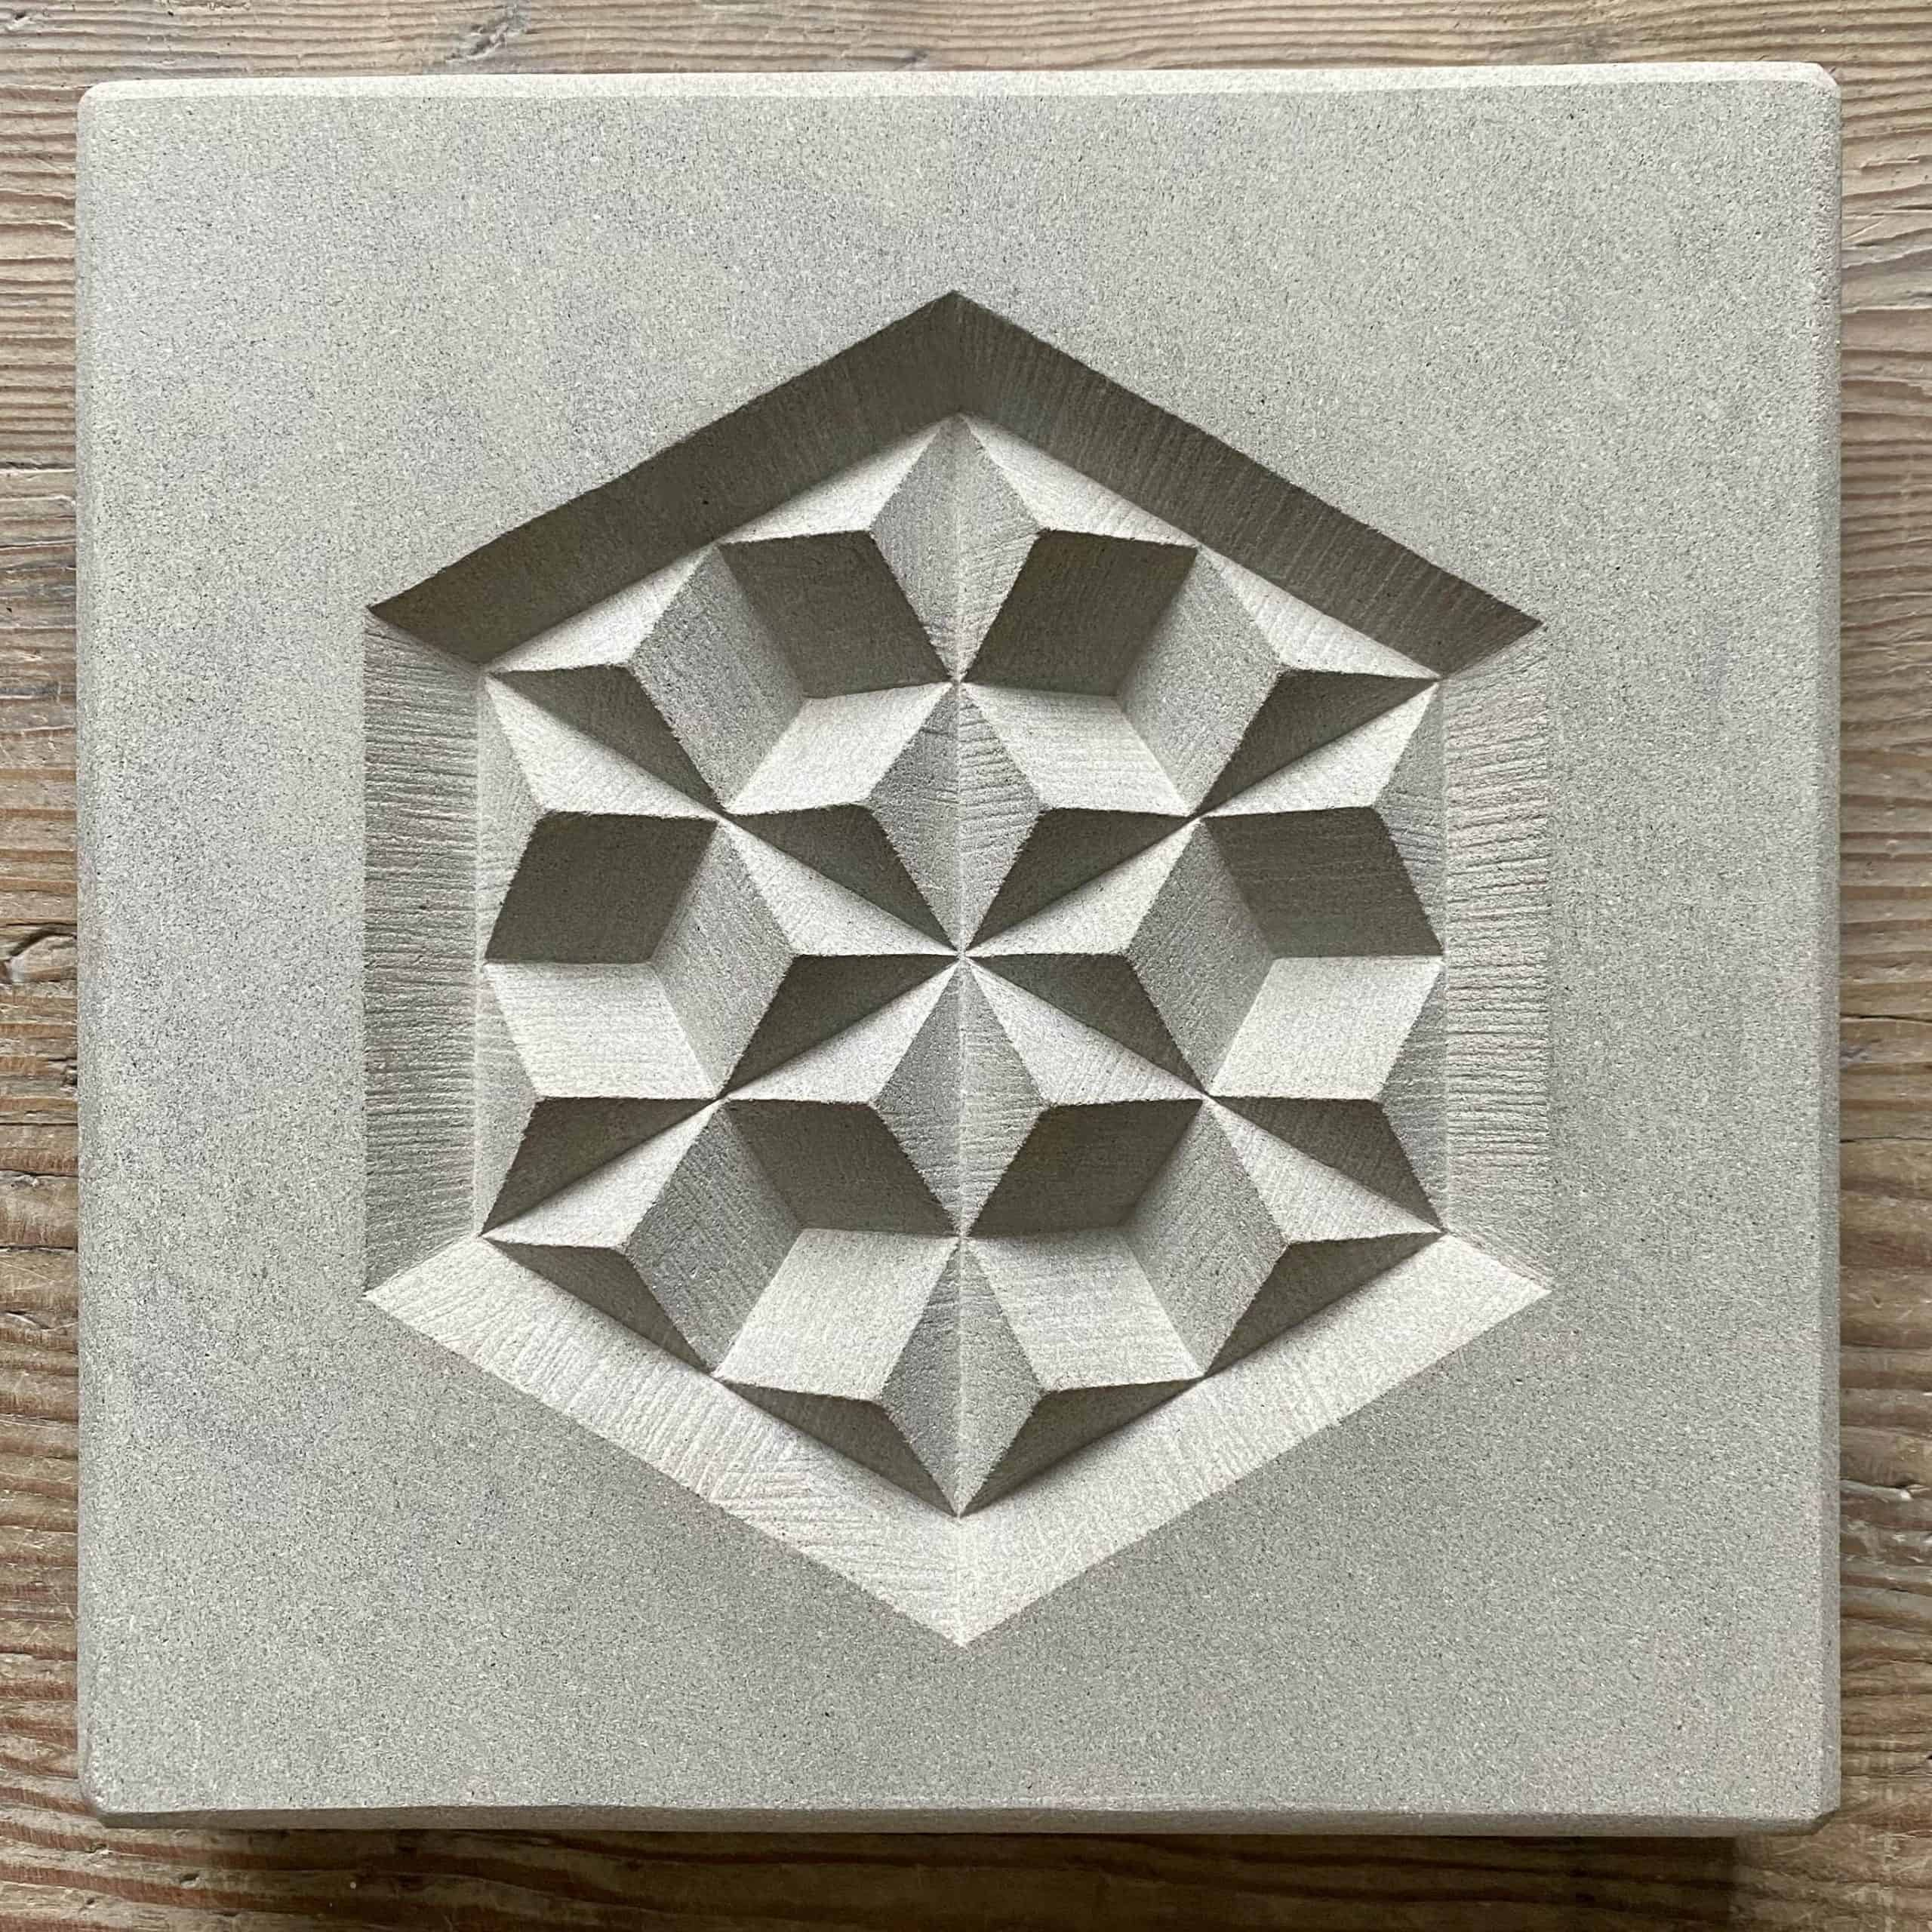 Hand carved geometric pattern in a buff colour Portland limestone